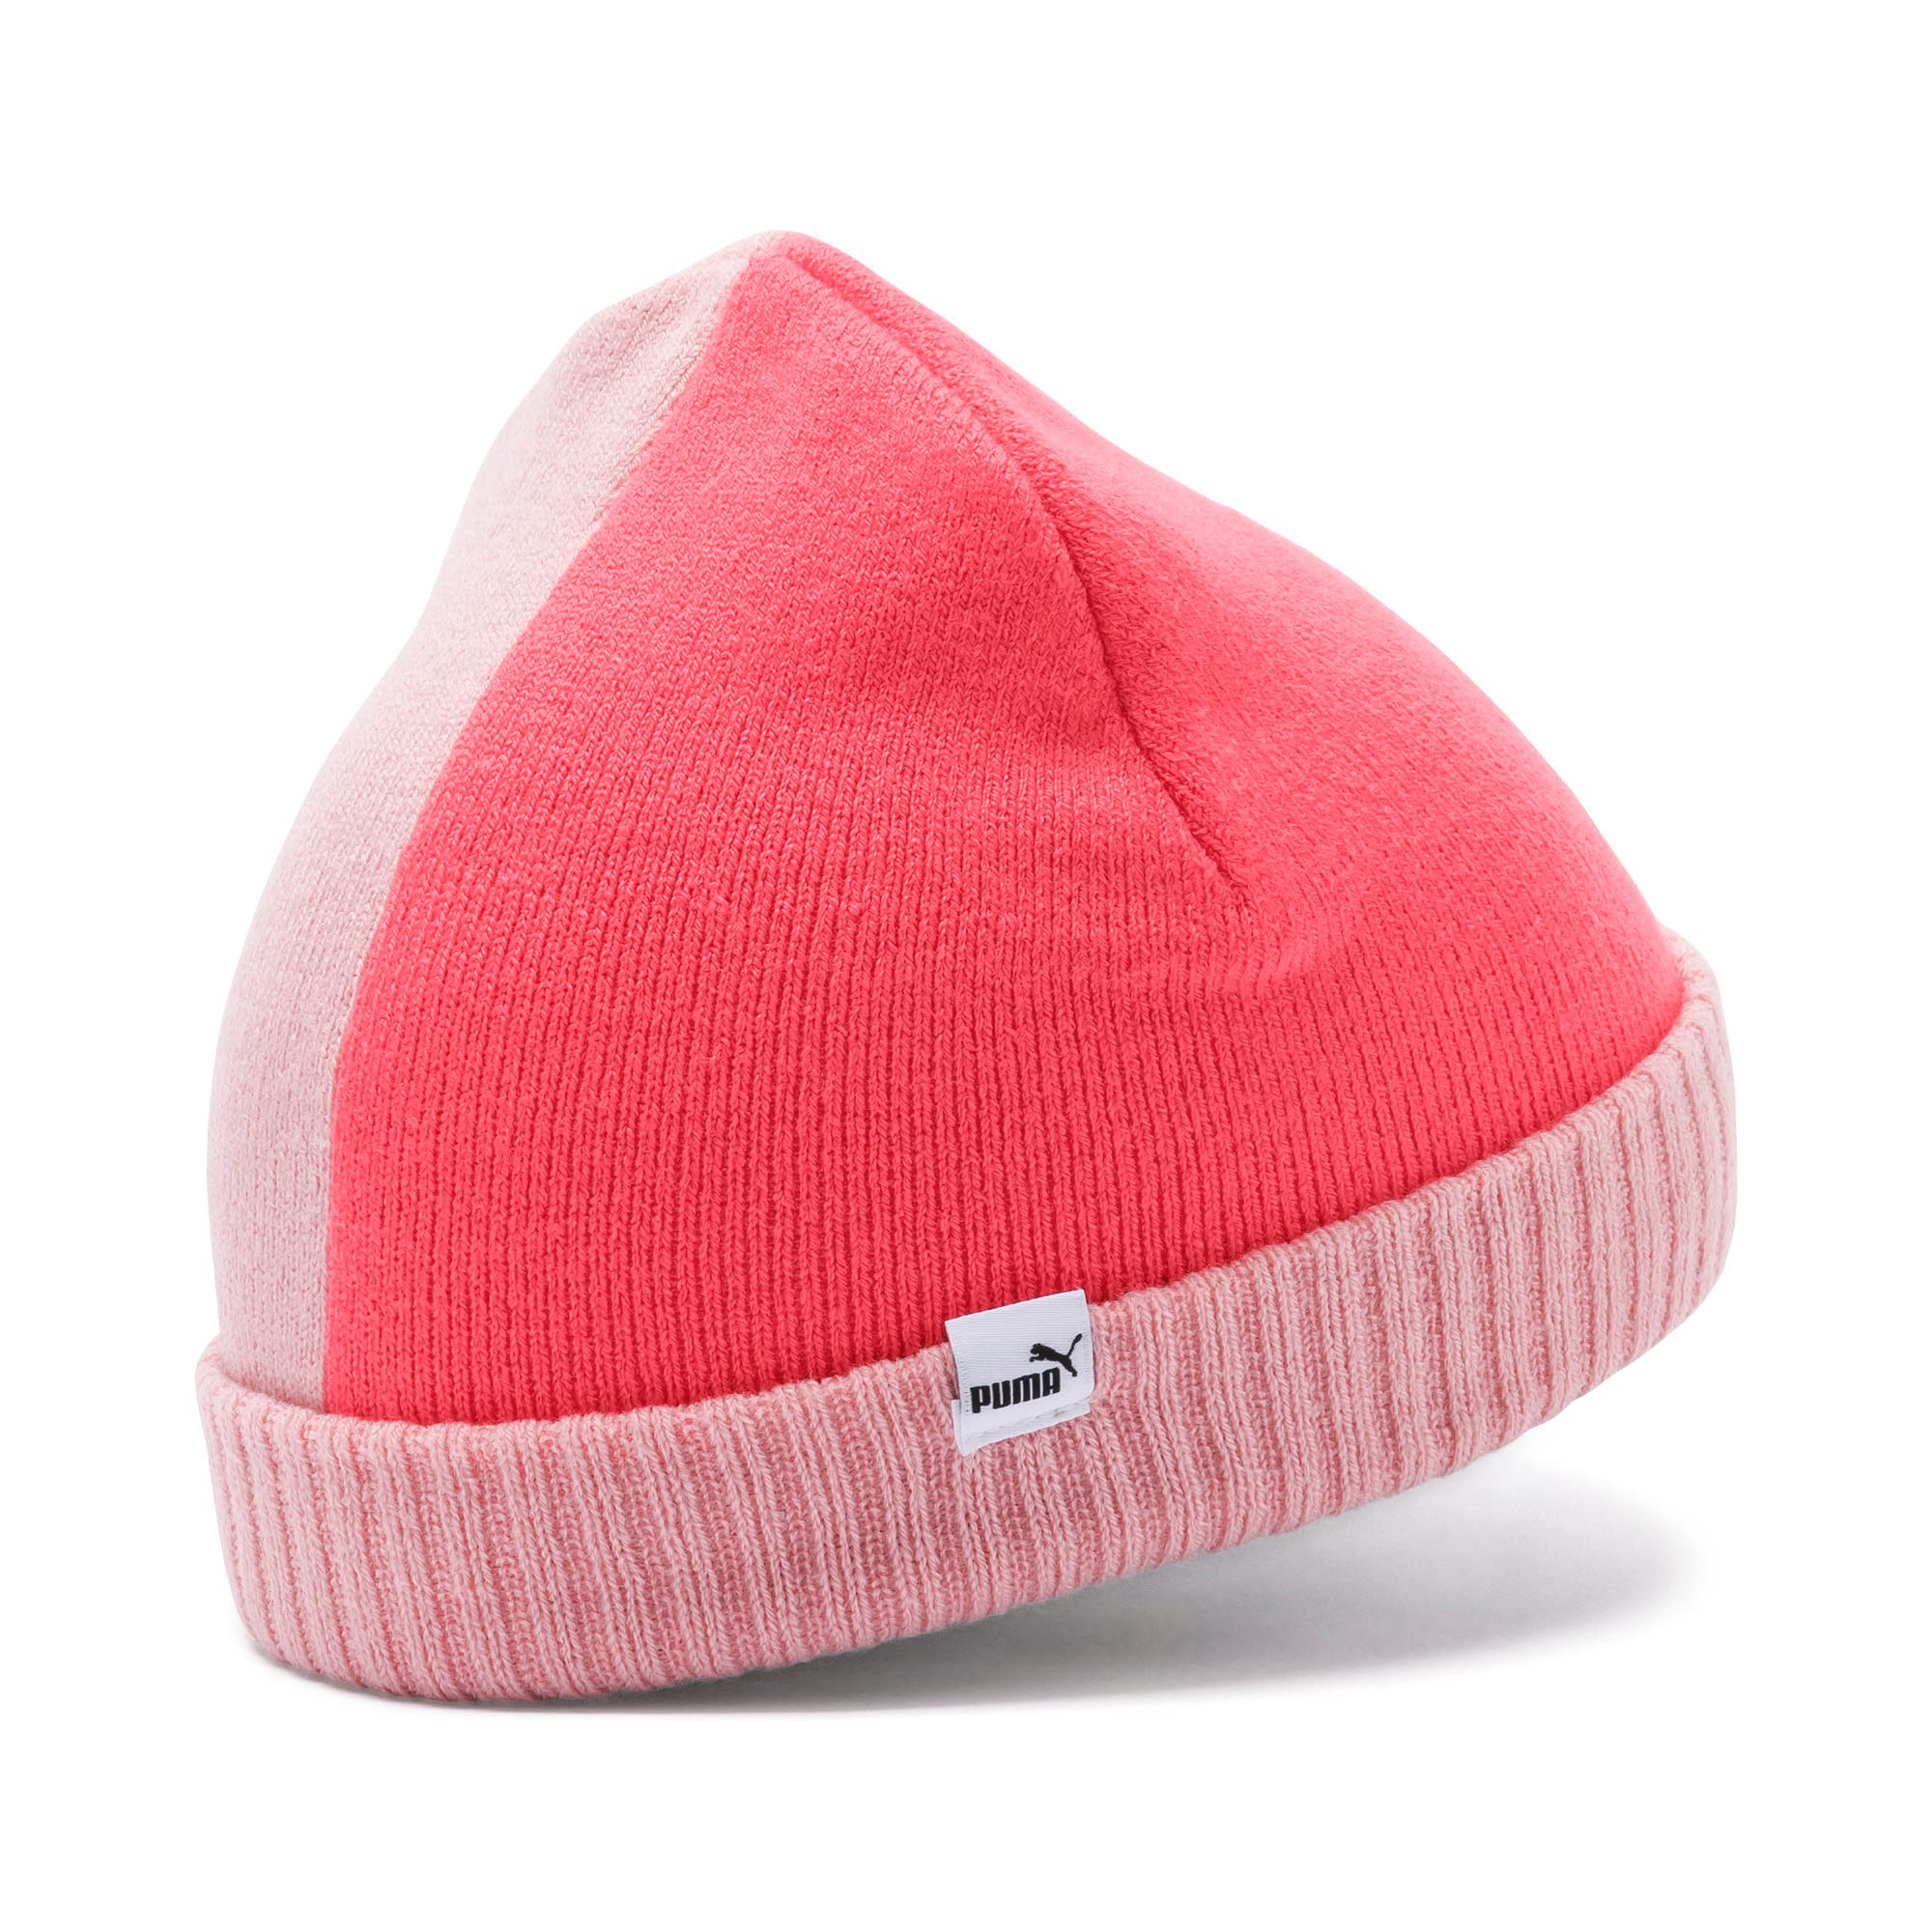 Thumbnail 2 of Minicats Kids' Beanie, Bridal Rose-Calypso Coral, medium